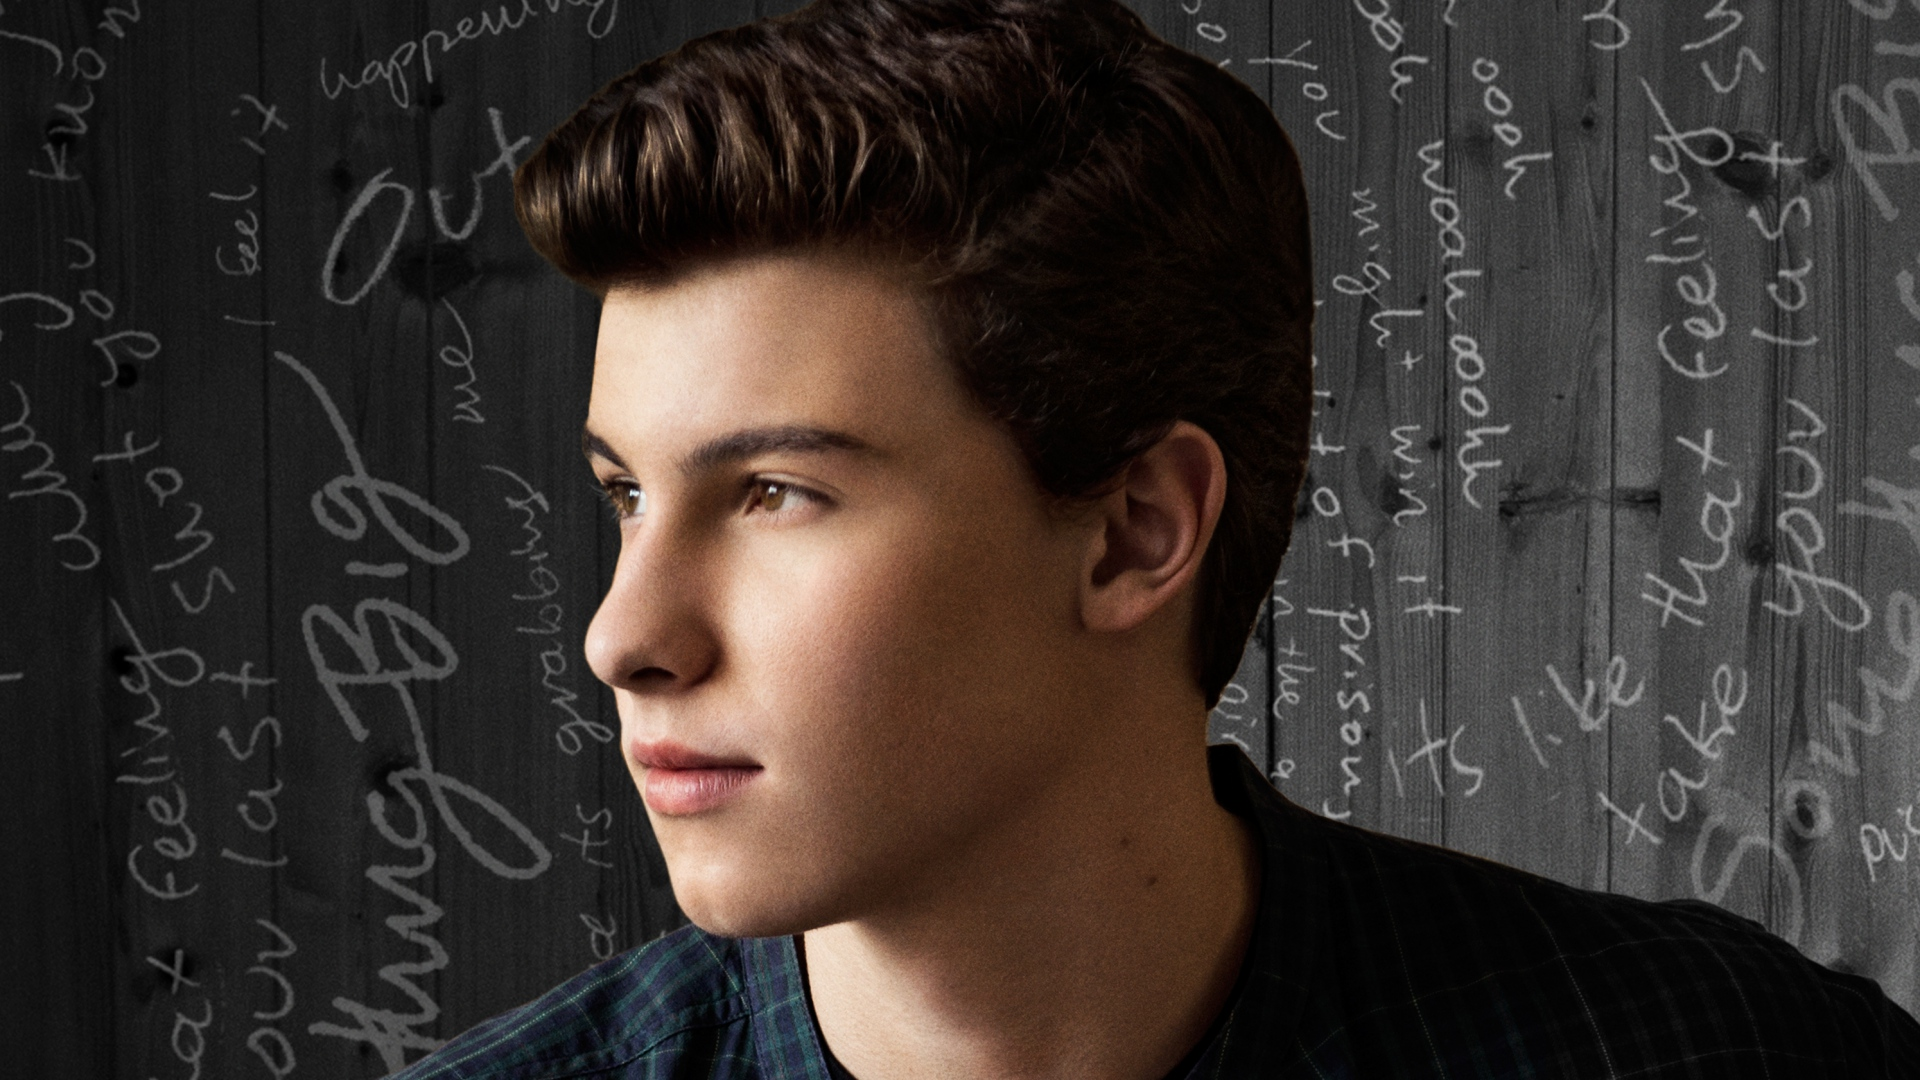 Shawn Wallpaper Shawn Mendes Wallpaper 39375754 Fanpop